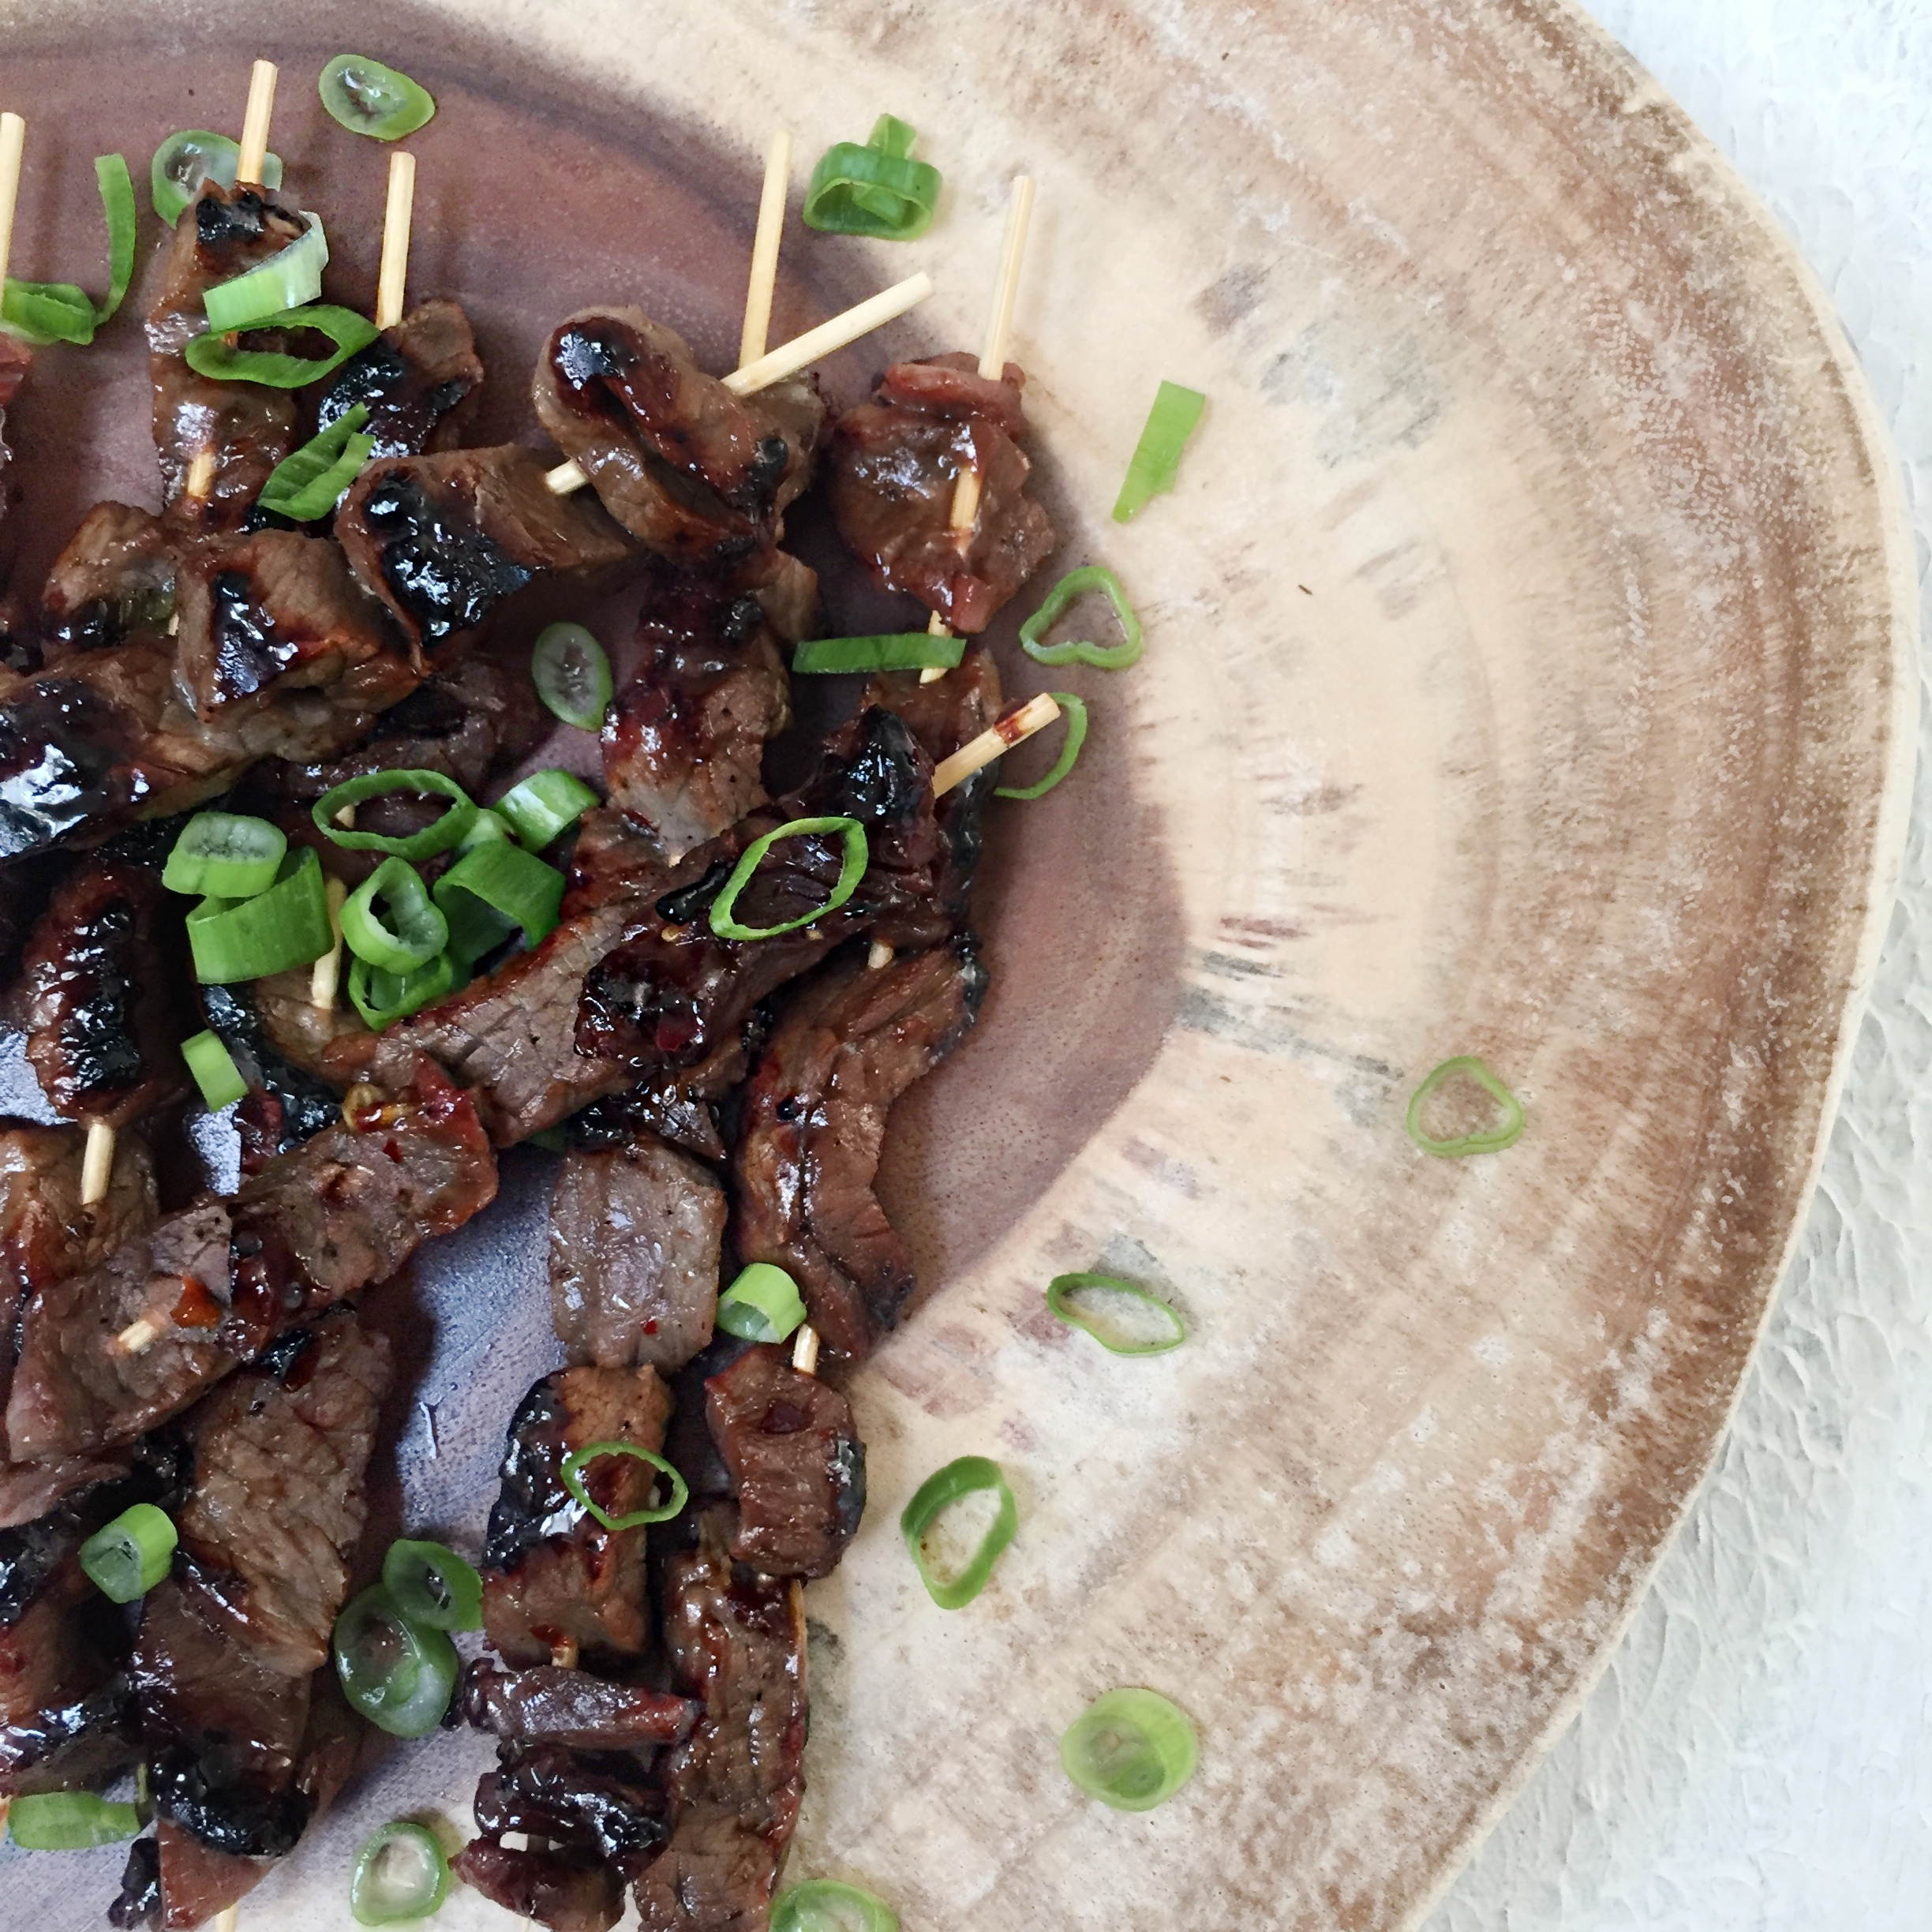 - prep time 10 minutes + marinading timecook time 6 minutestotal time 15 minutes + marinading timeservings 4